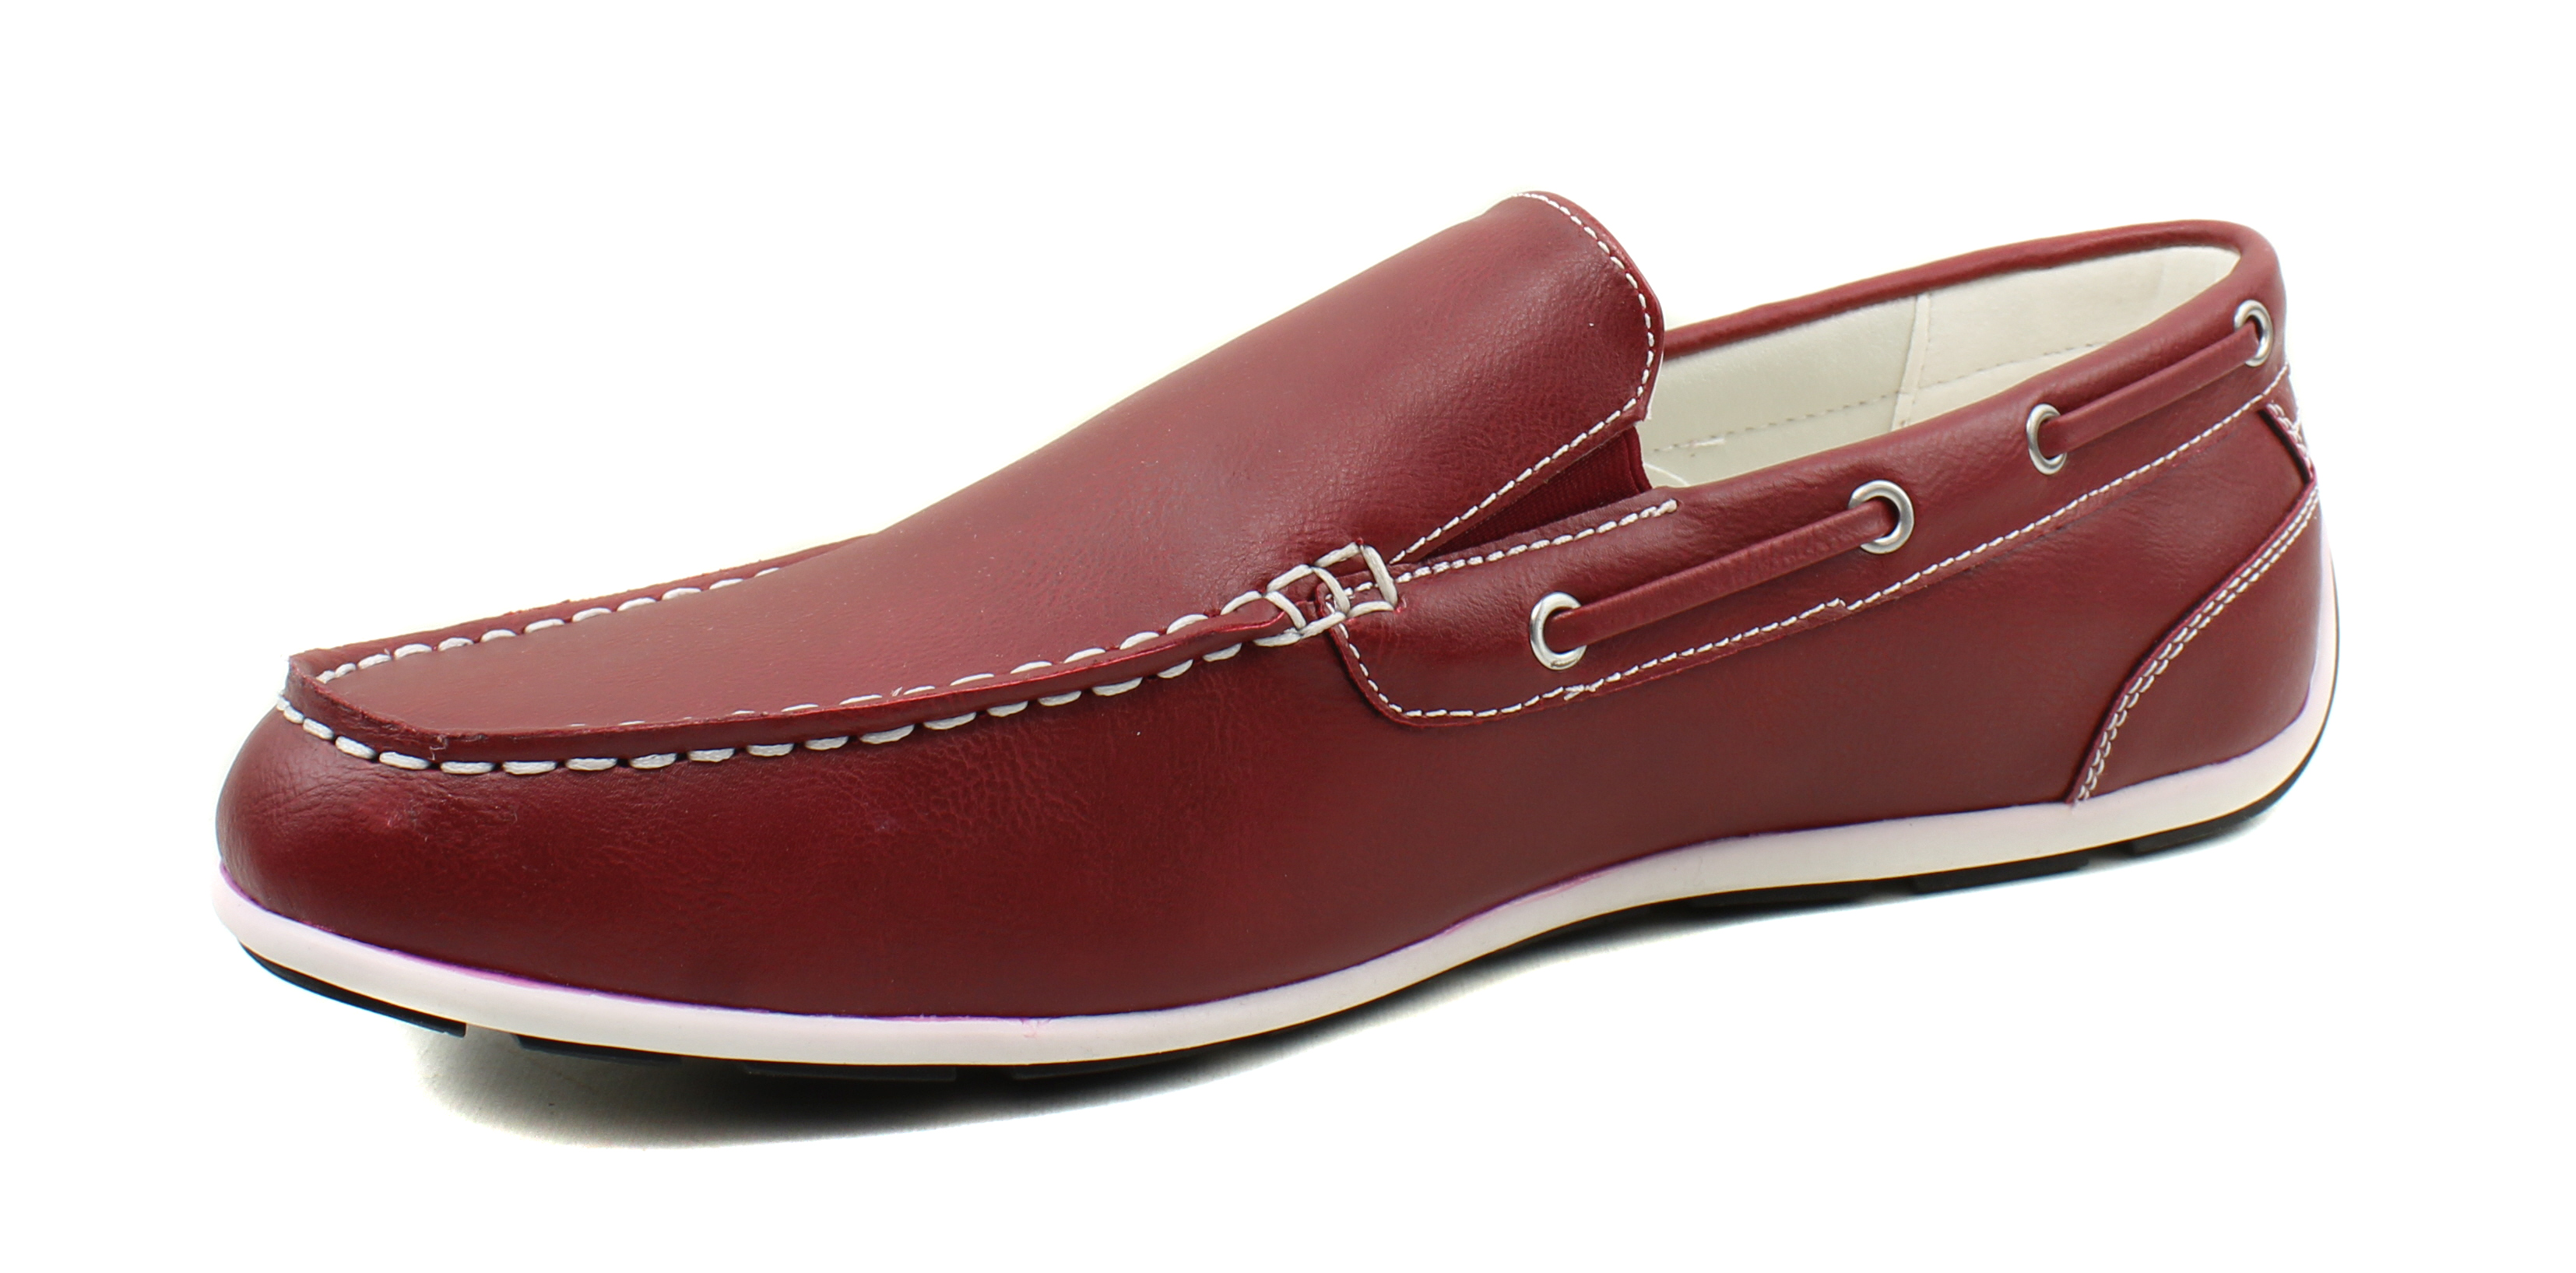 GBX-Homme-Ludlam-Casual-Moc-toe-Slip-on-Chaussures-Bateau-Driving-Loafers miniature 27